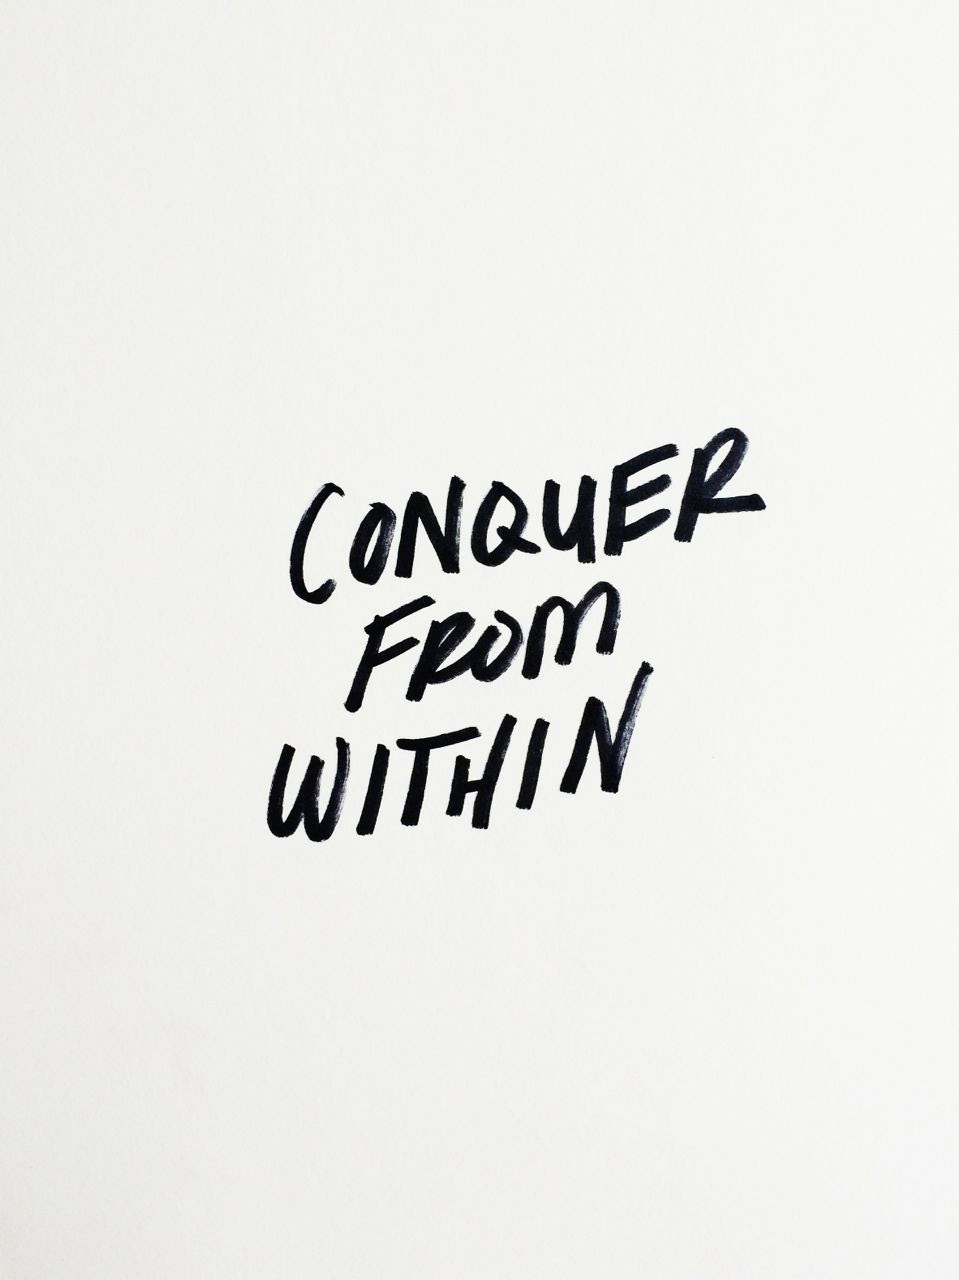 Conquer From Within Pictures Photos And Images For Facebook